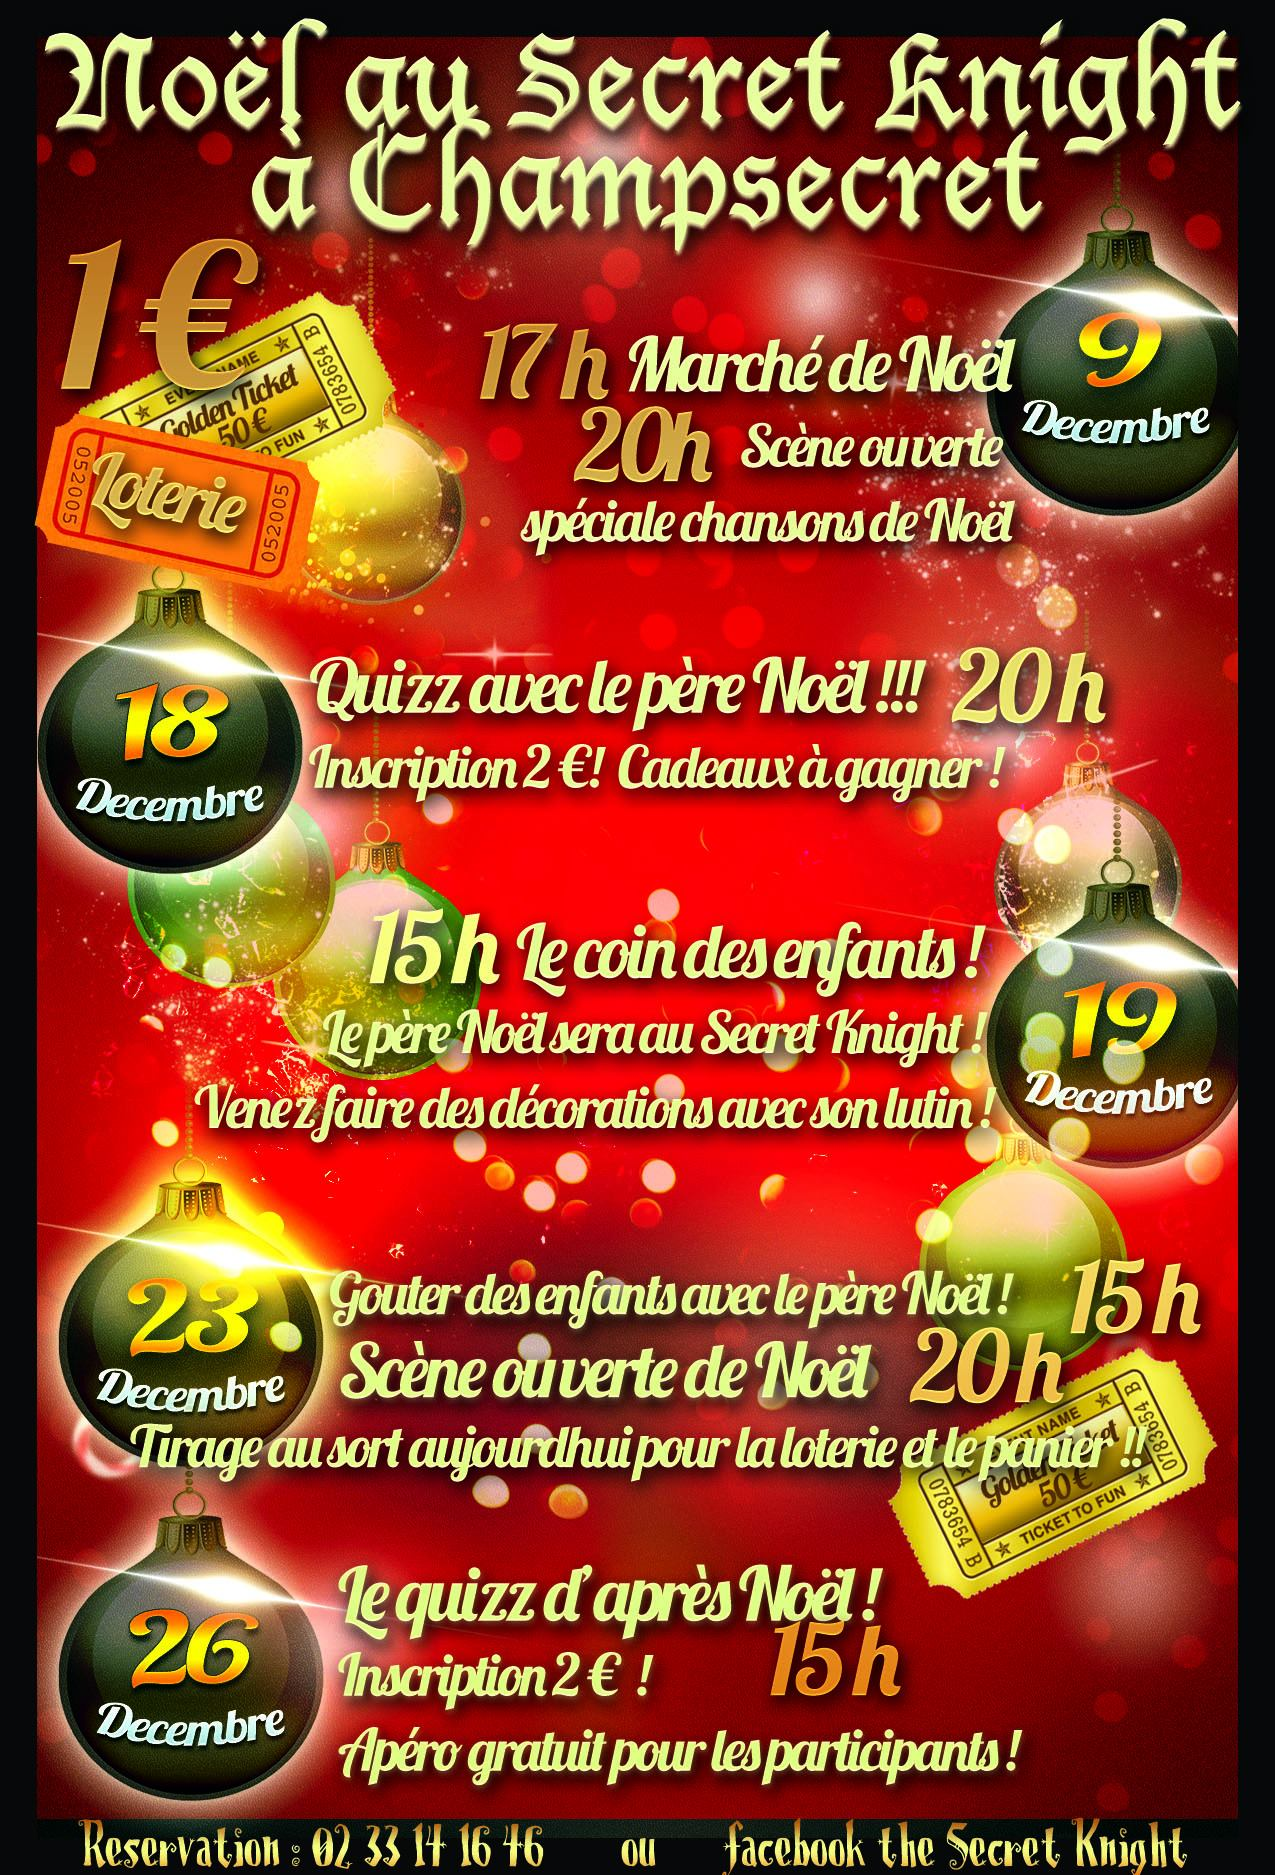 Les fêtes de Noël au Secret Knight !